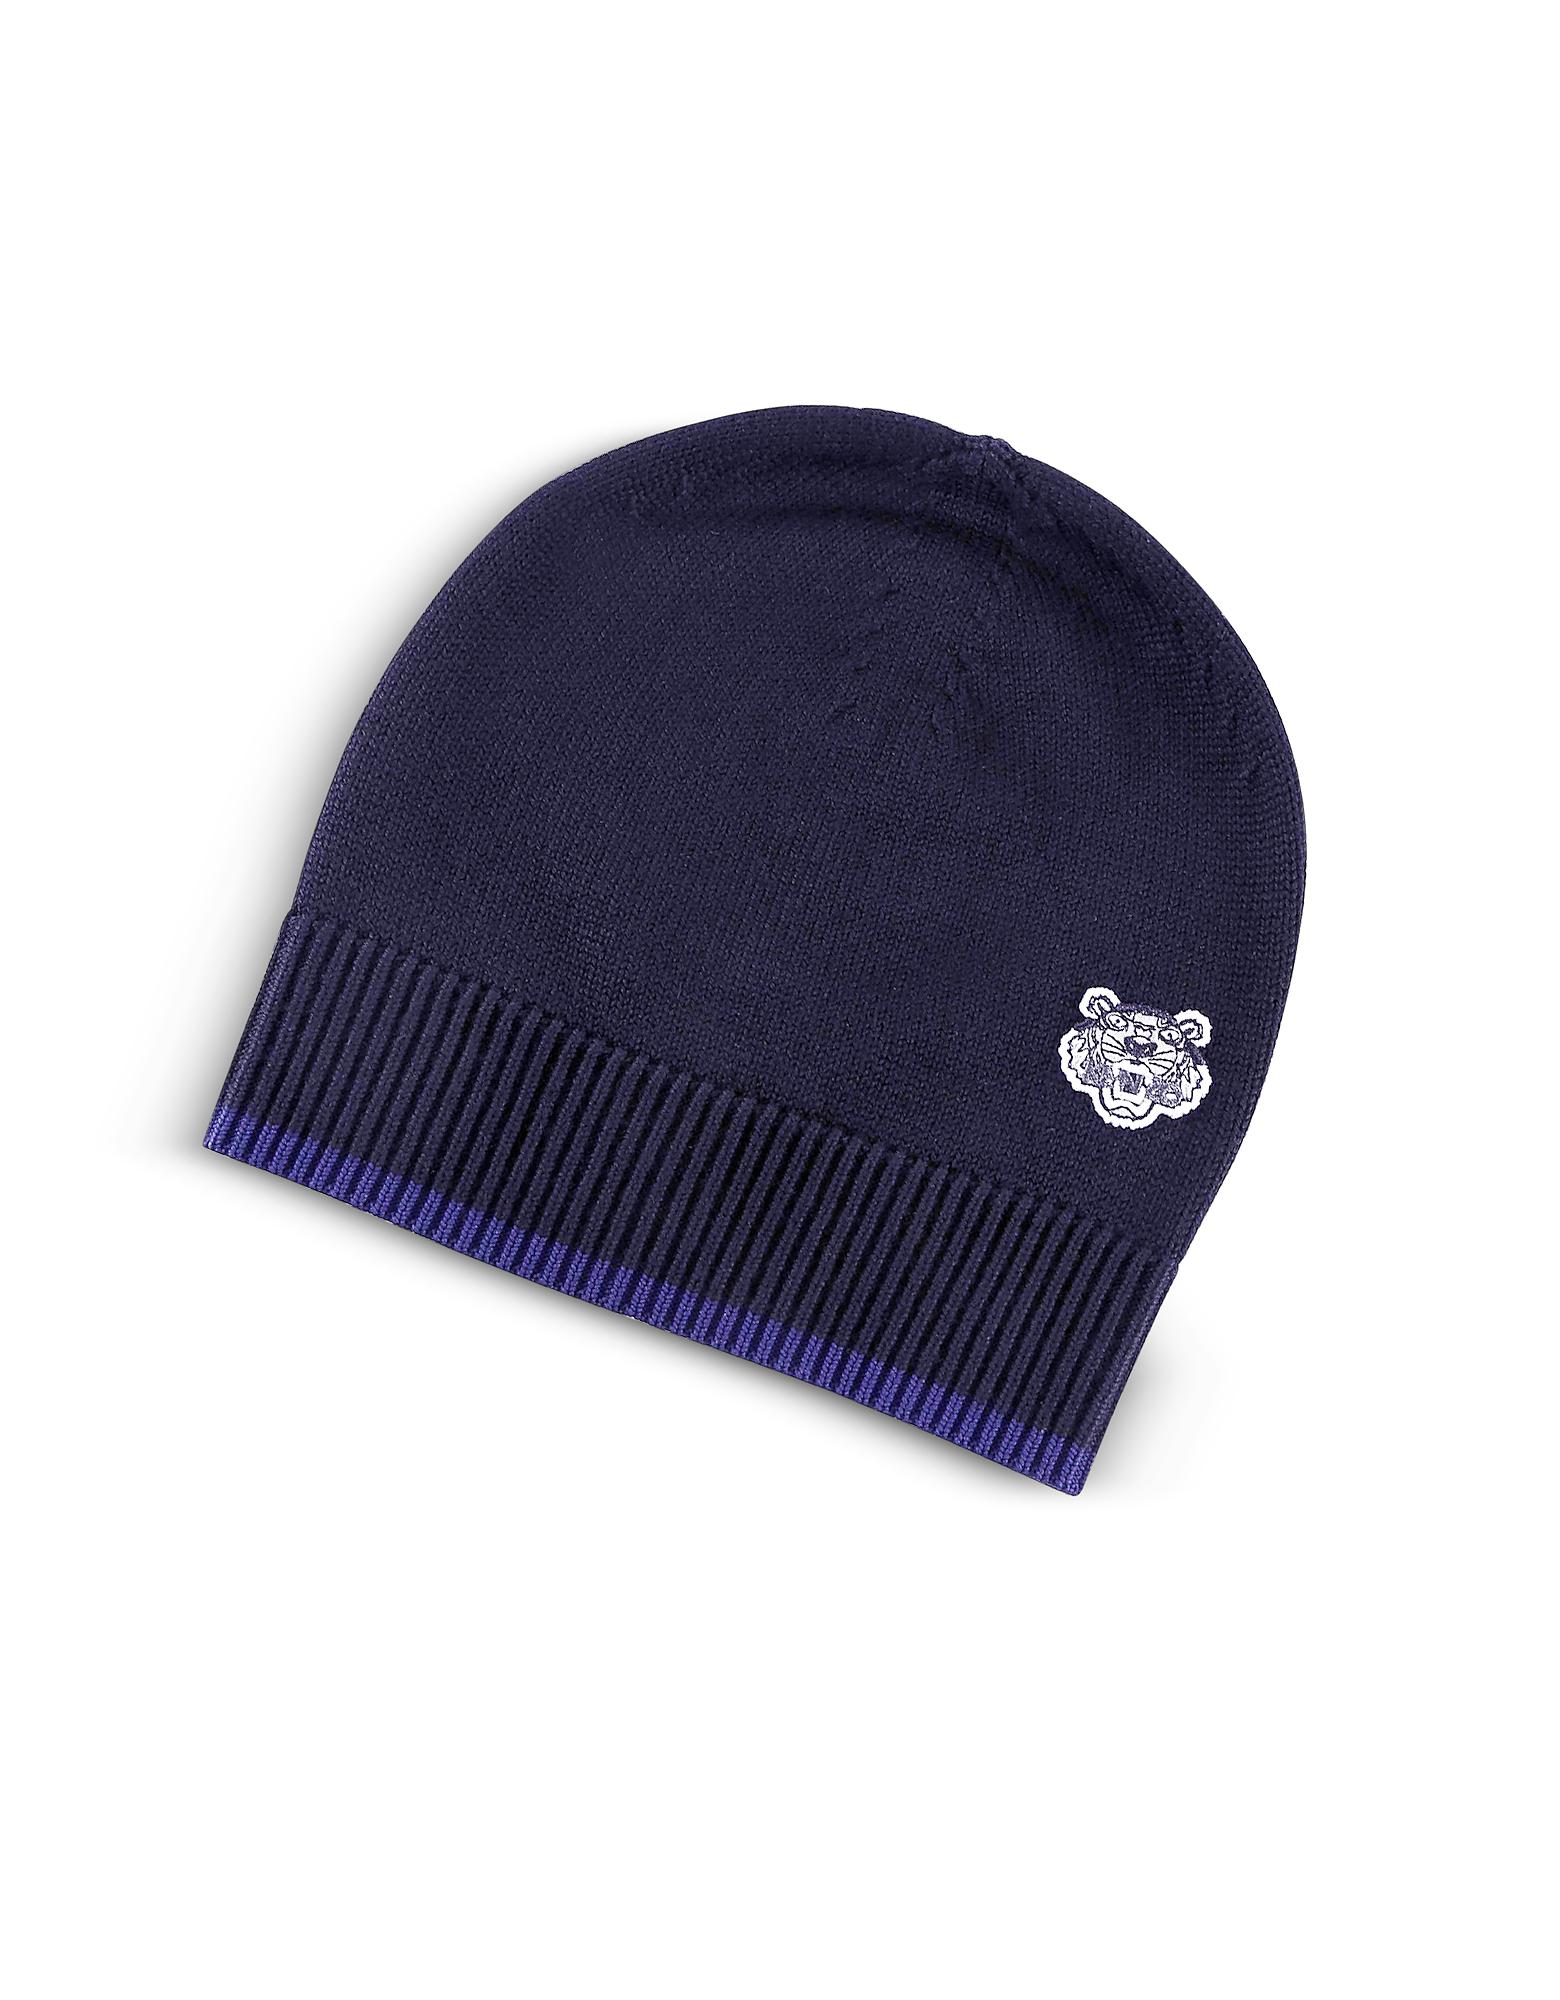 7276ebfc5dd546 KENZO Wool Signature Tiger Crest Beanie in Blue for Men - Lyst